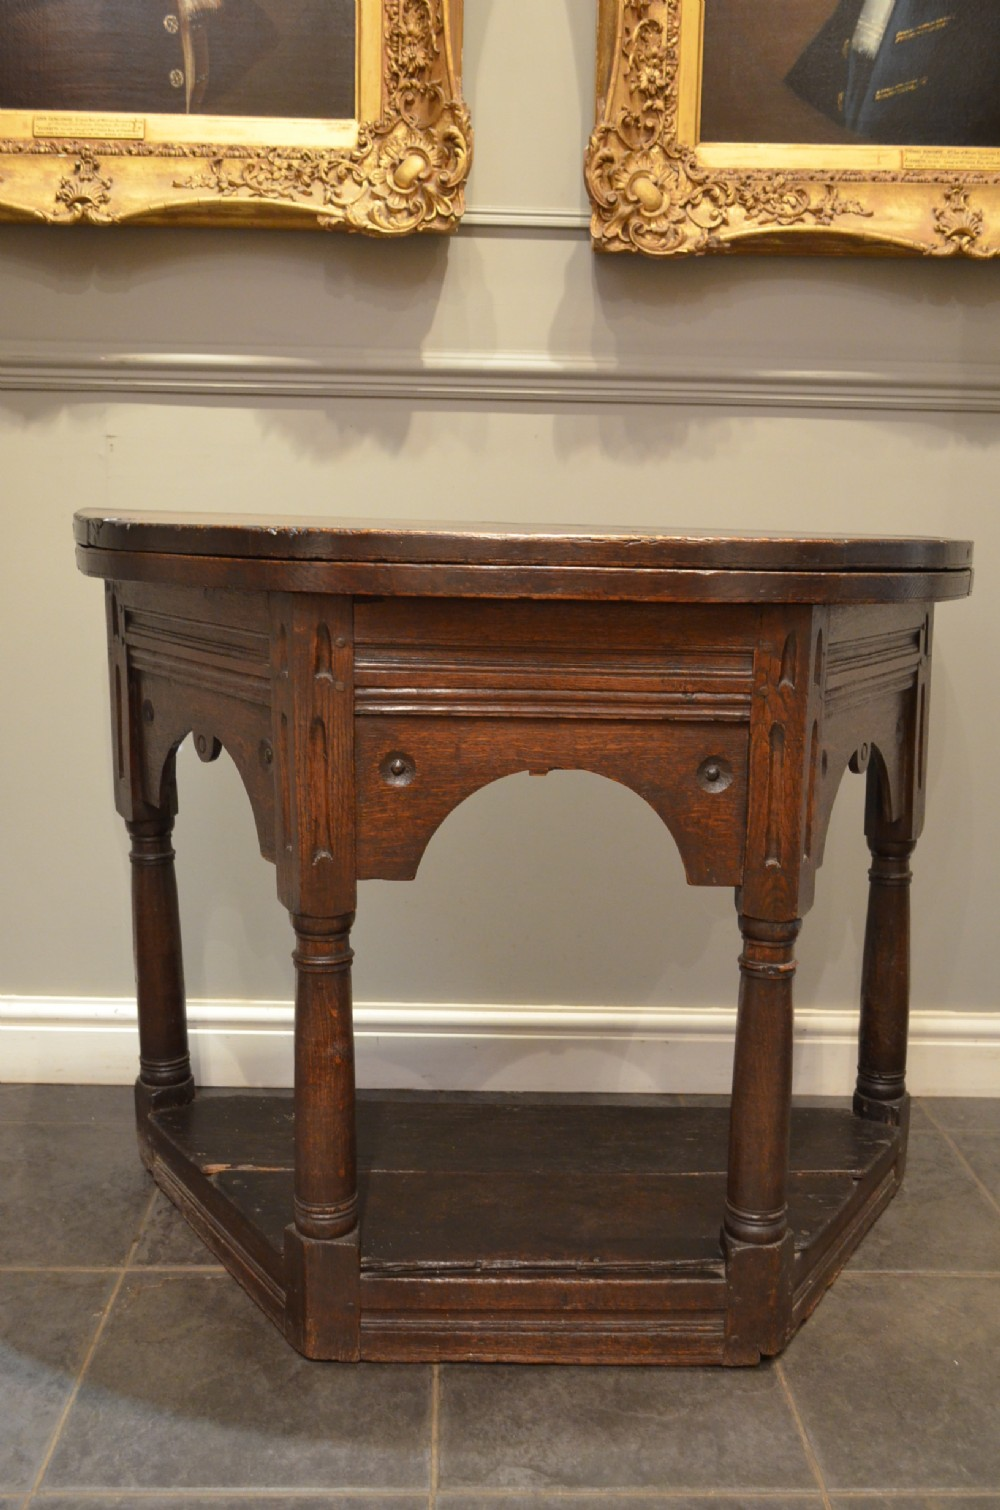 oak 17th century credence table or side table